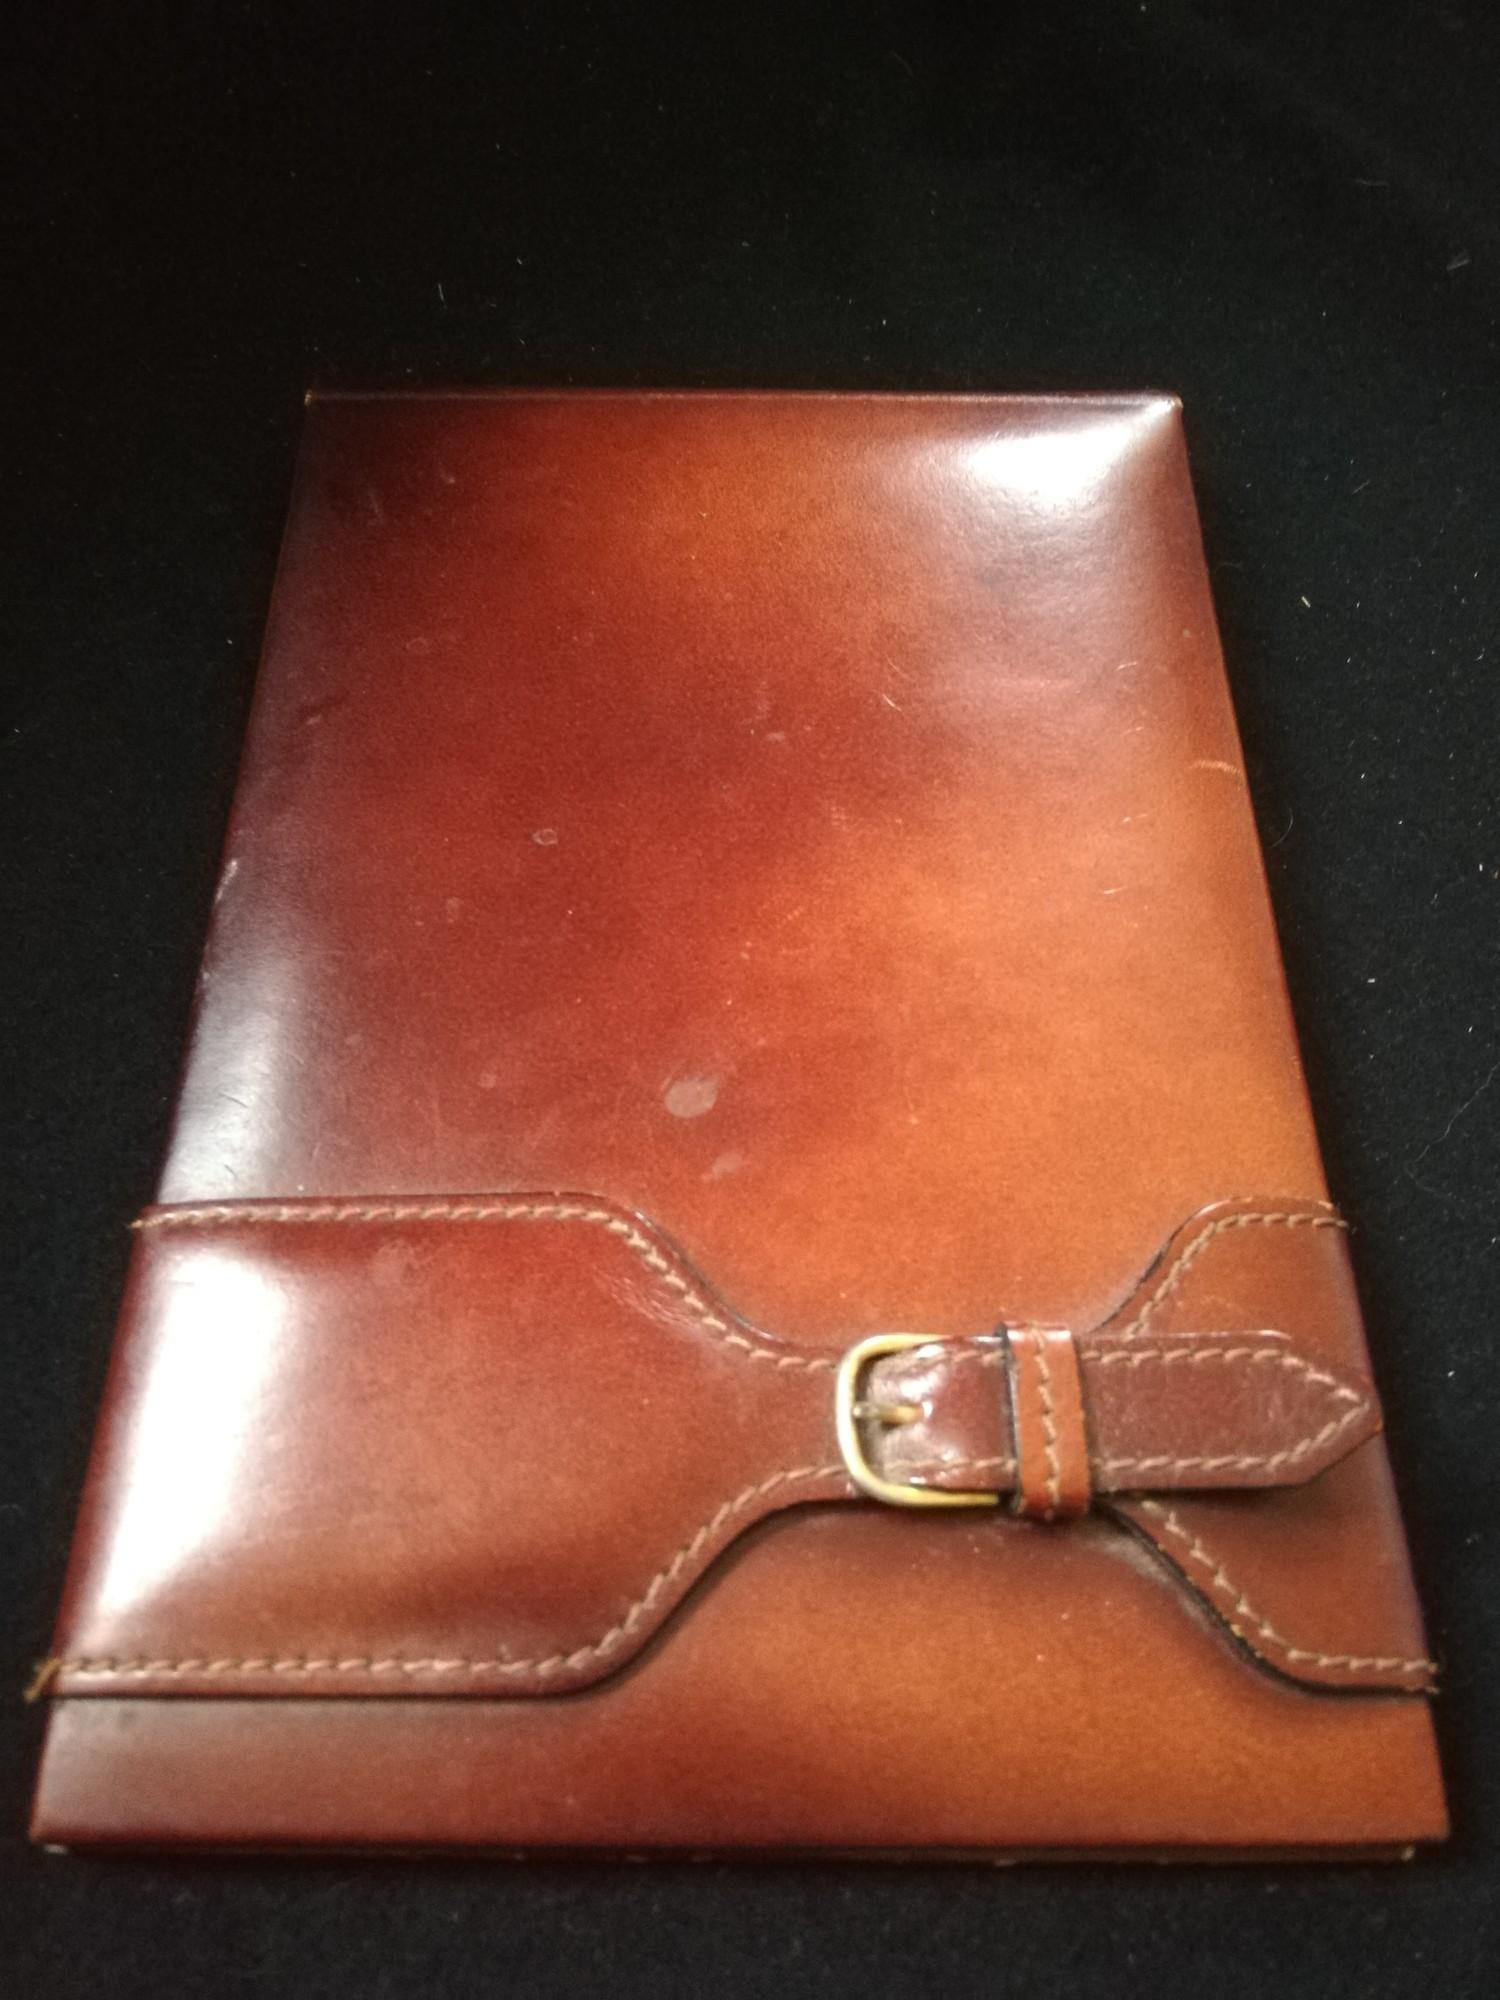 Rolex tan leather desk notebook holder